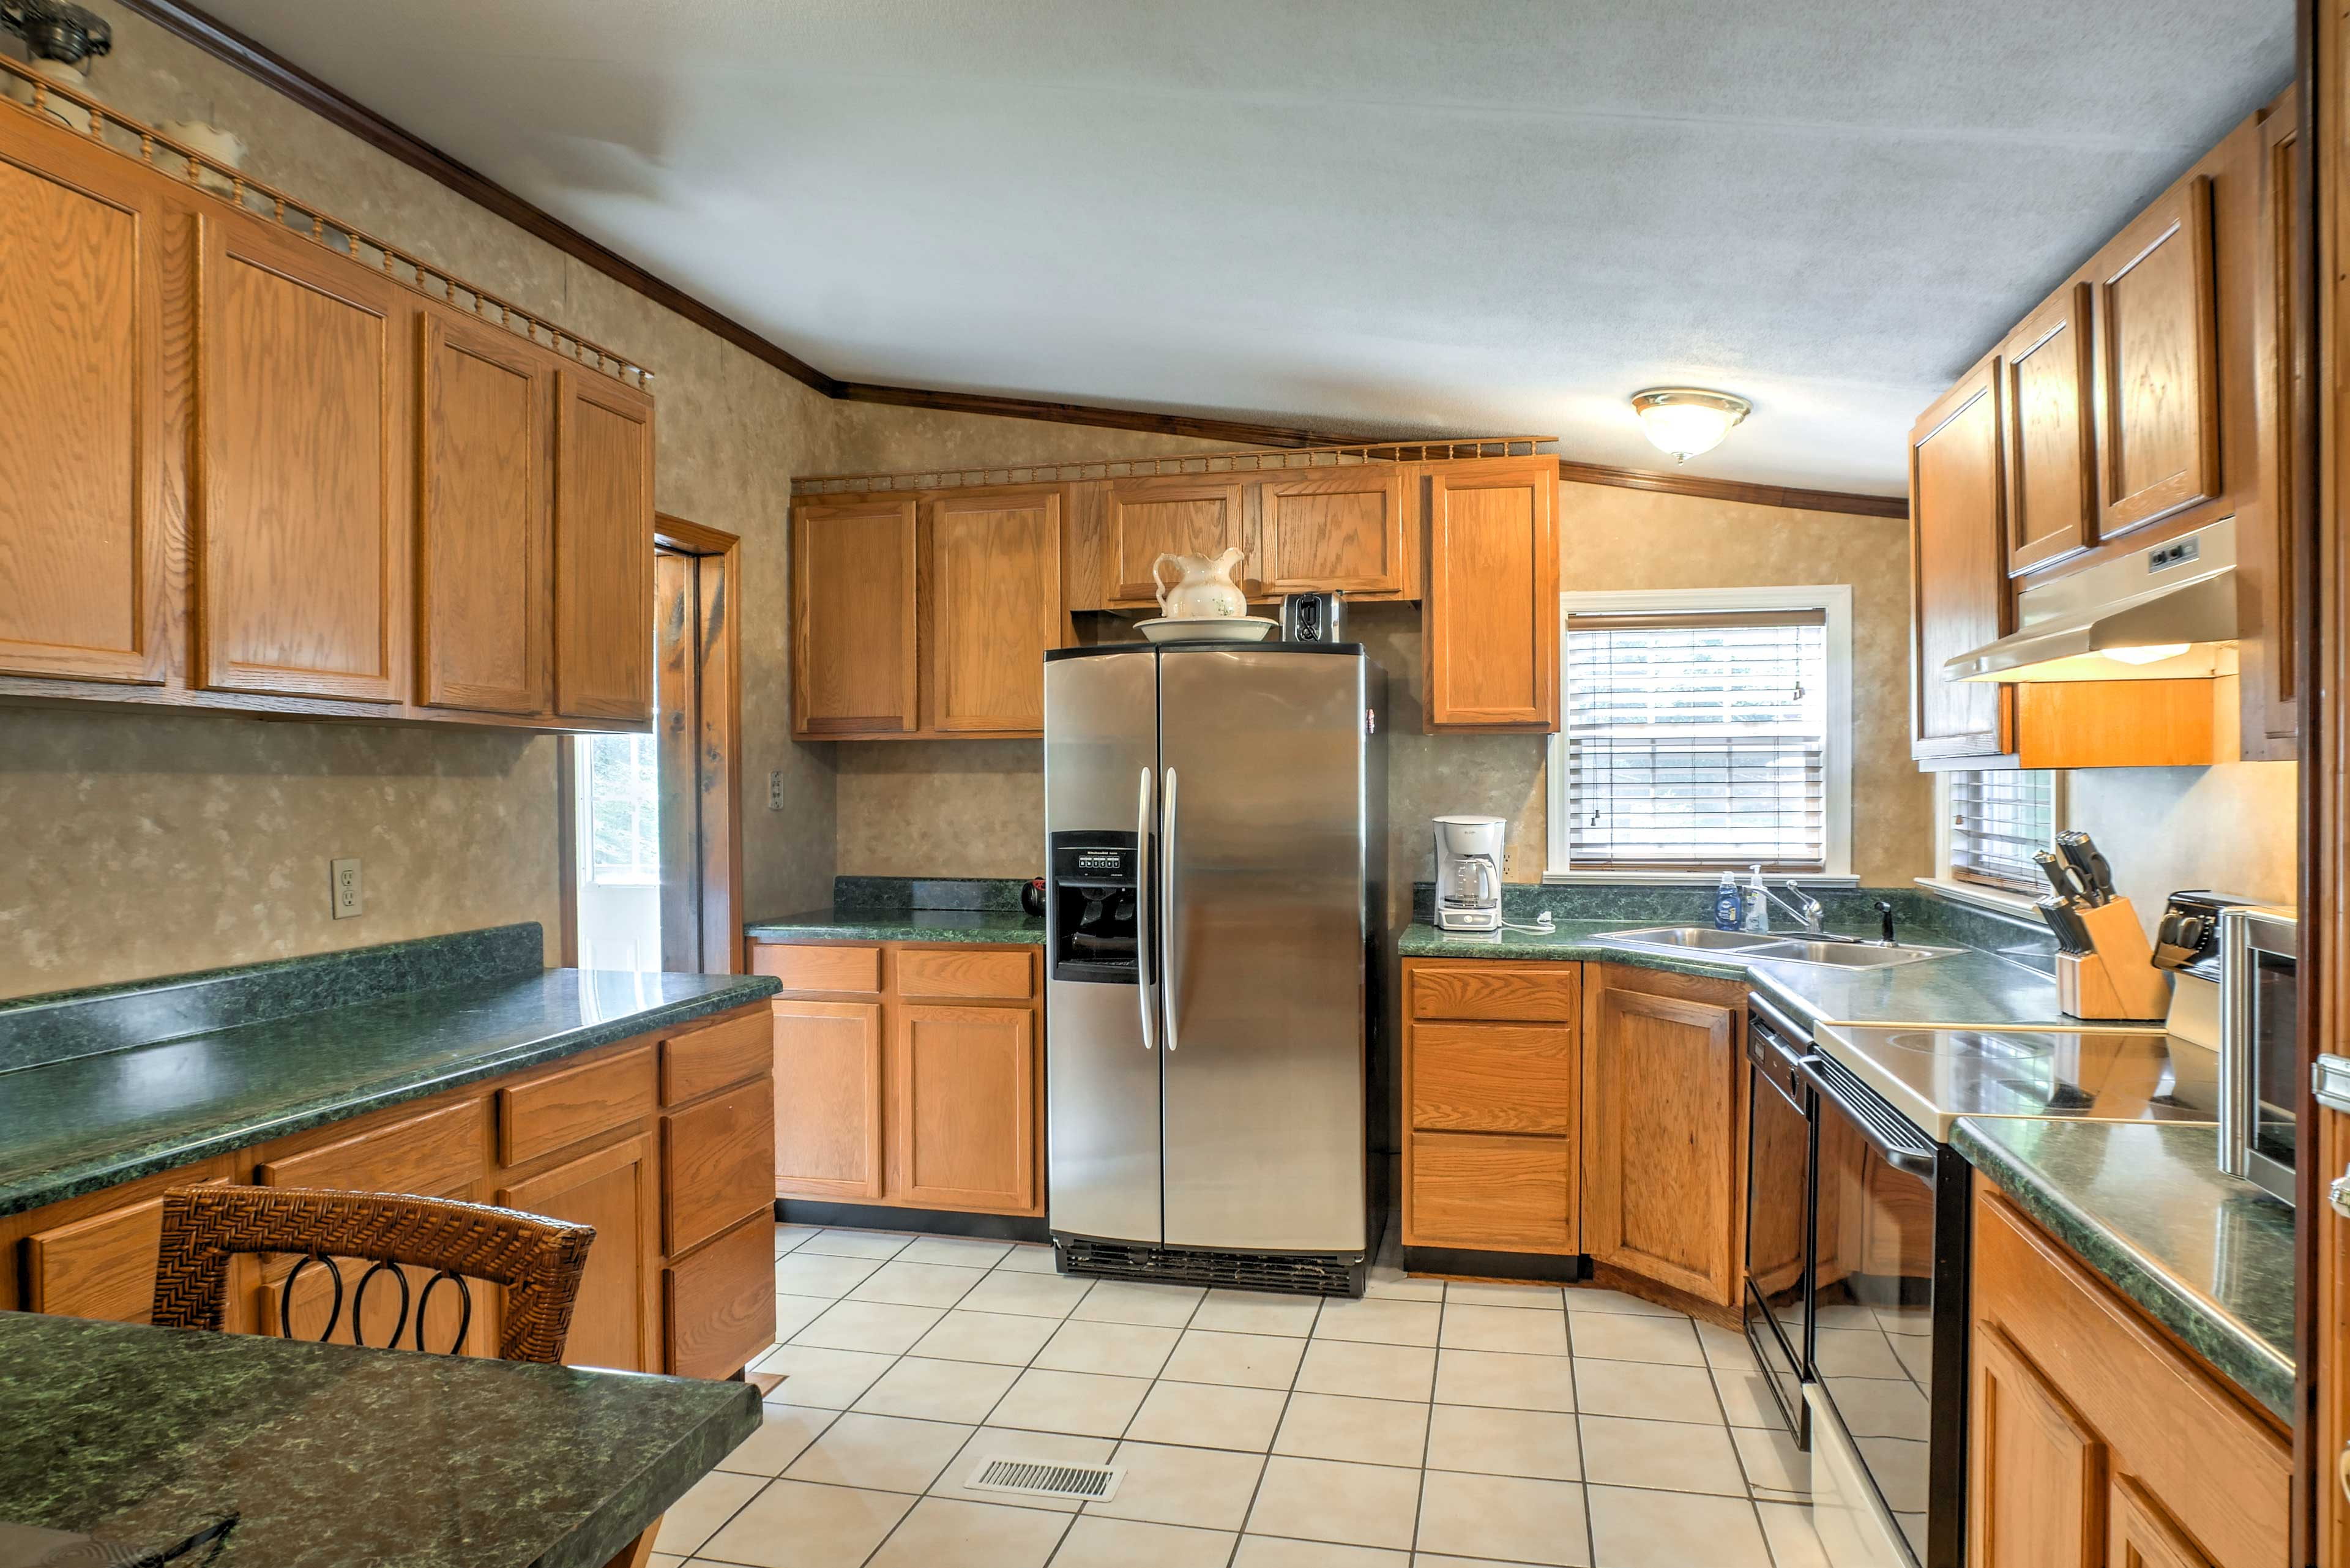 Prepare any number of dishes in the fully equipped kitchen.